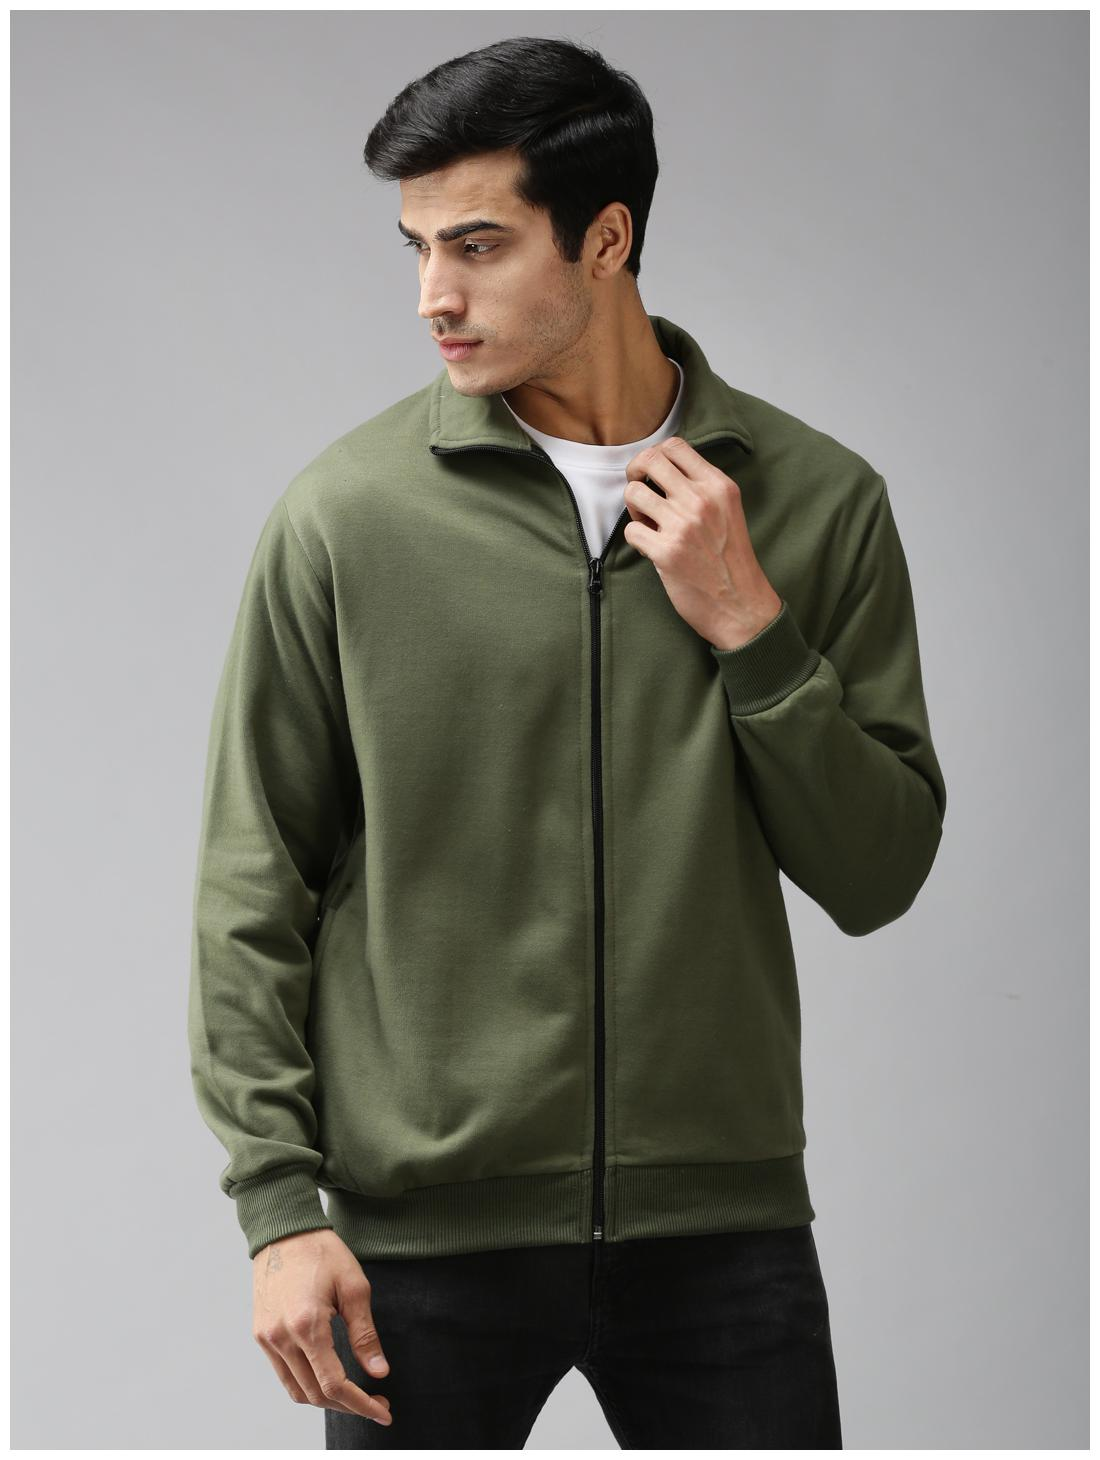 https://assetscdn1.paytm.com/images/catalog/product/A/AP/APPEPPE-FLEECE-EPPE11578267205E554/1599810879124_0..jpg